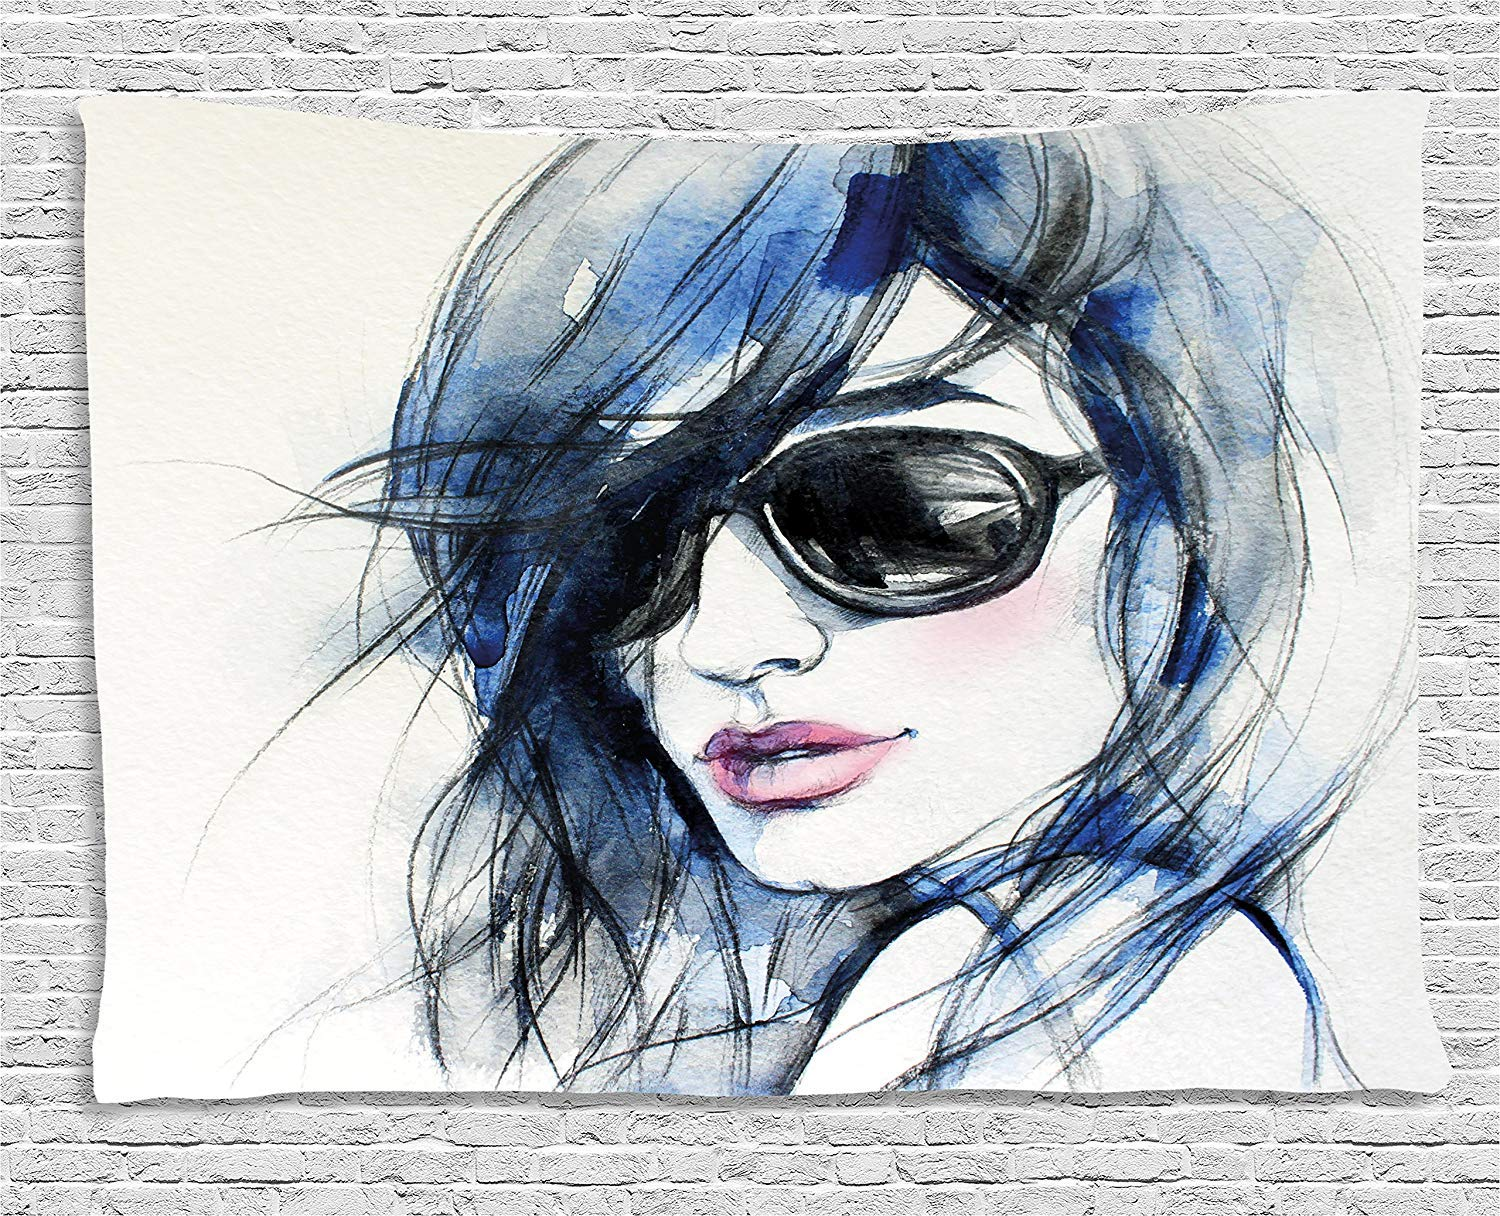 THndjsh Abstract Tapestry, Watercolor Woman with Sunglasses and Blue Hair Portrait Hand Drawn Picture, Wall Hanging for Bedroom Living Room Dorm, 60 W X 40 L Inches, Coconut Blue and Black